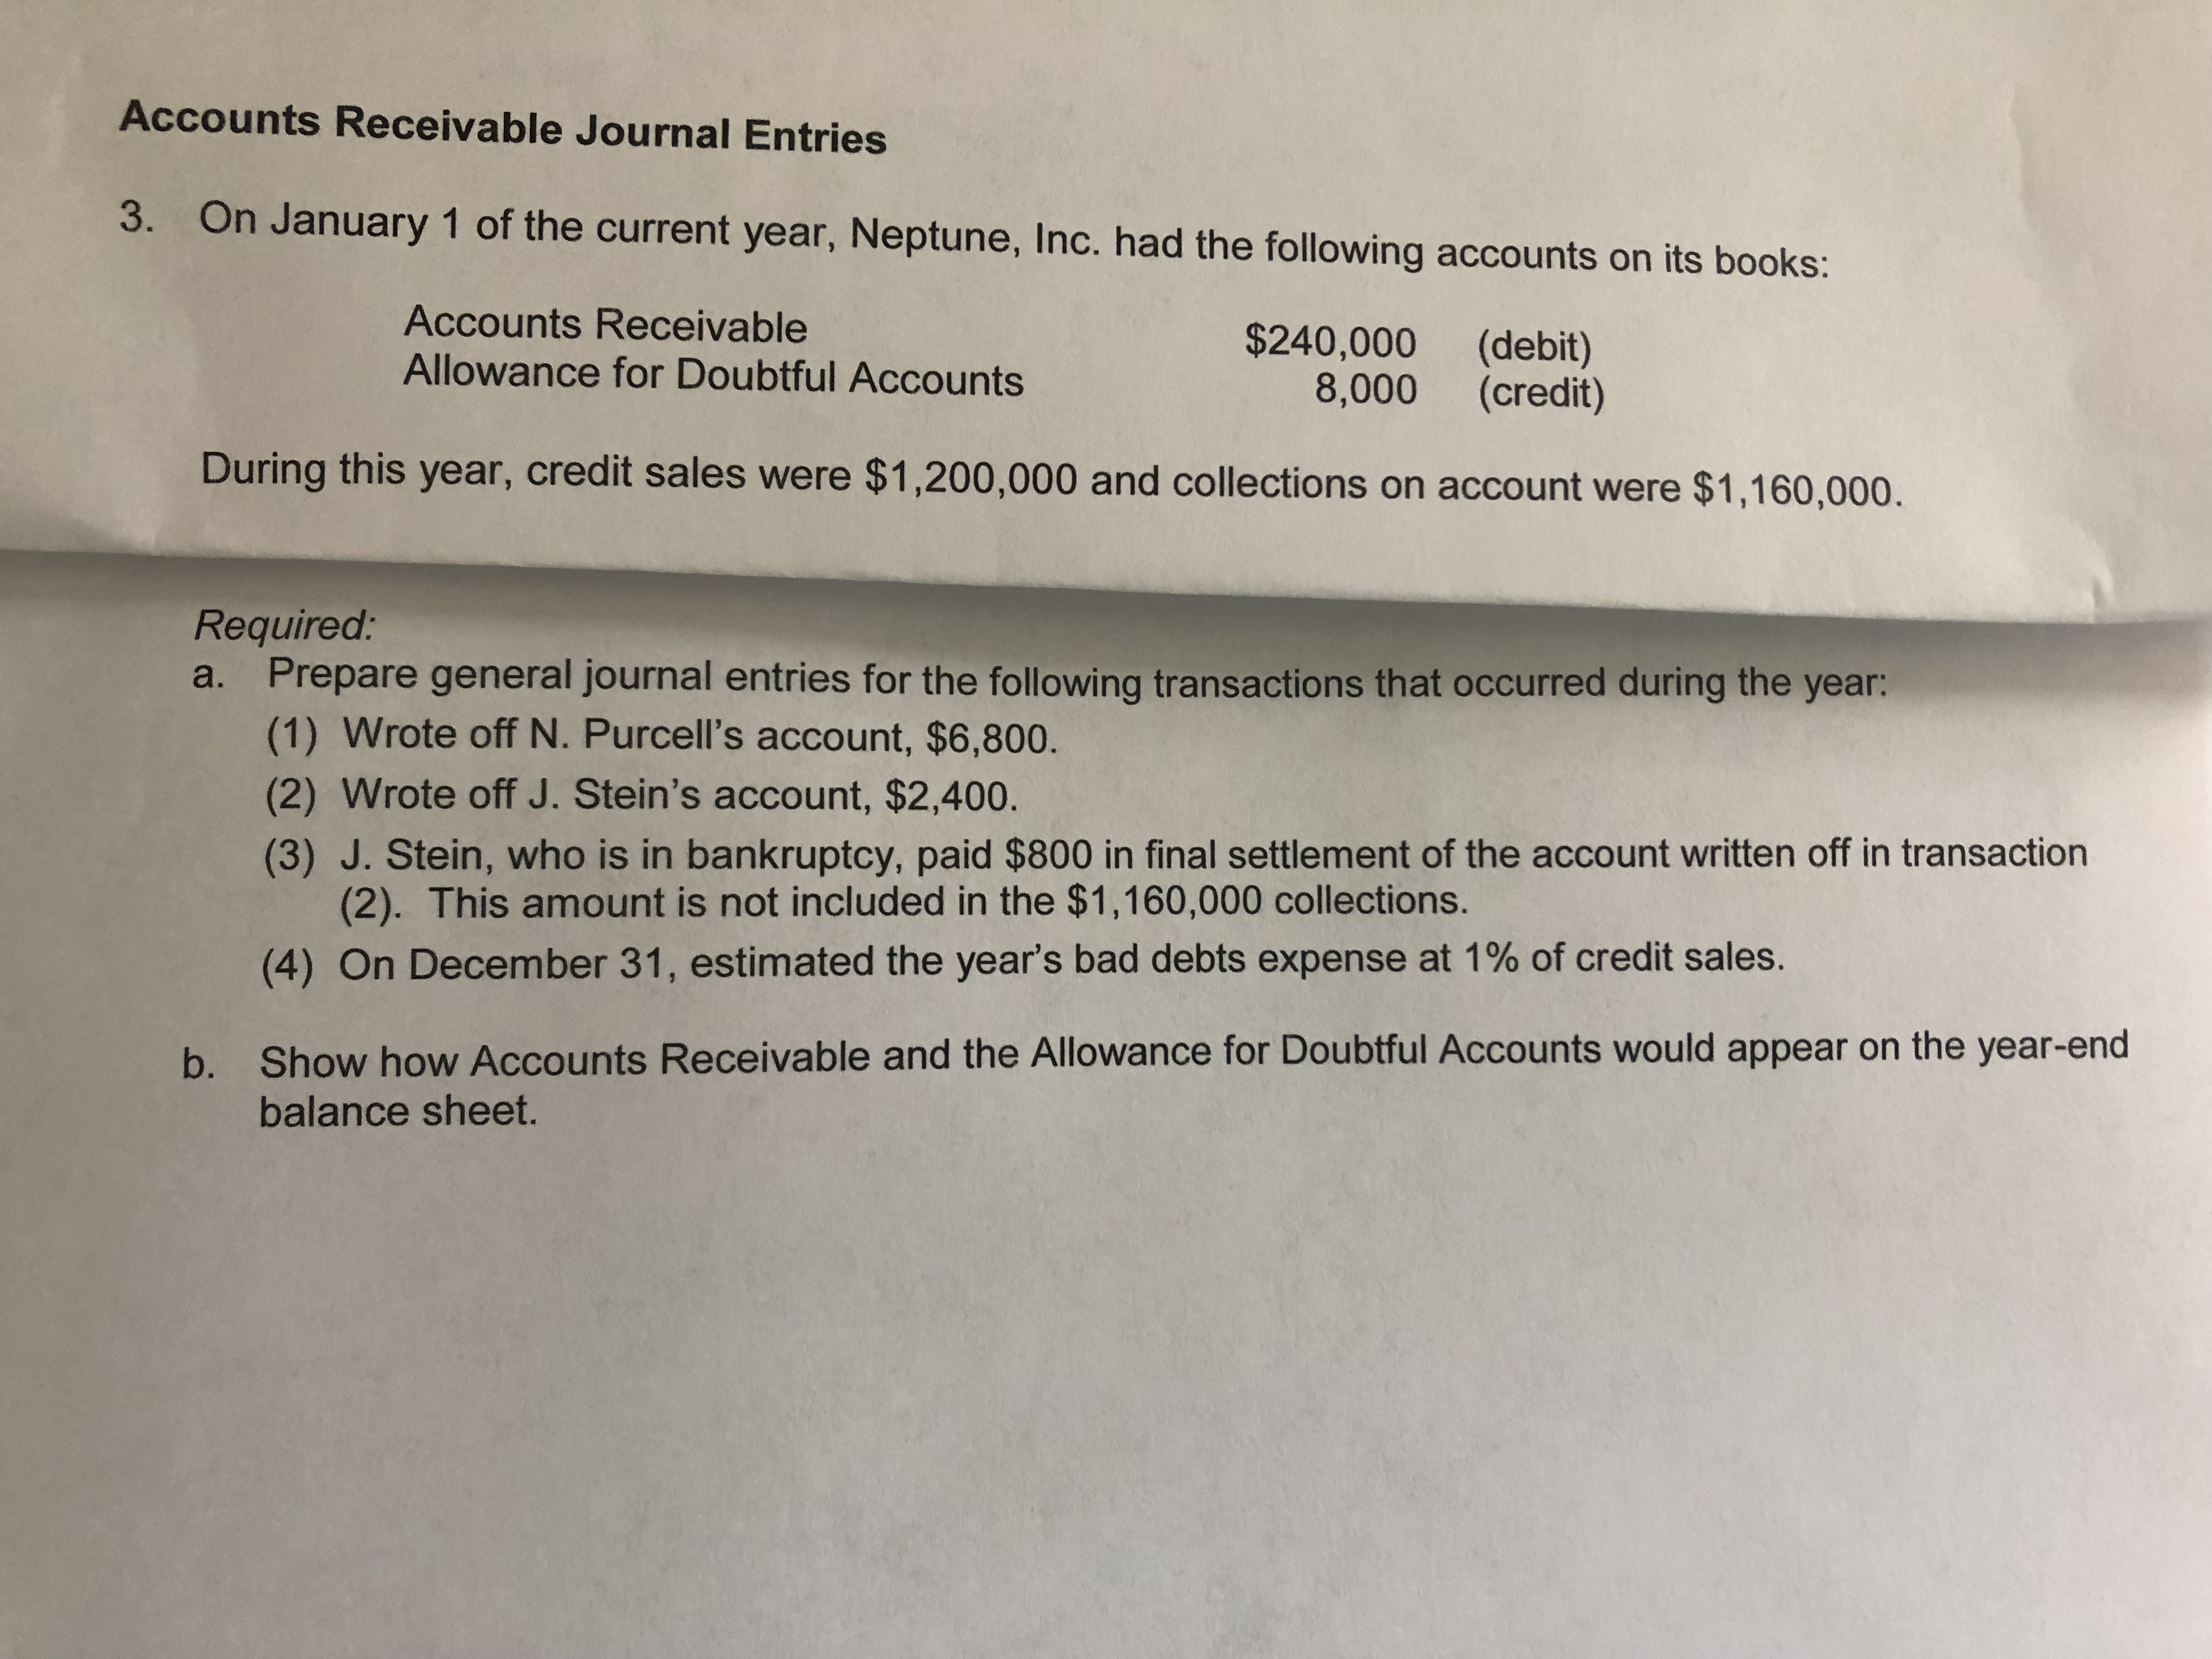 Accounts Receivable Journal Entries 3. On January 1 of the current year, Neptune, Inc. had the following accounts on its books: Accounts Receivable Allowance for Doubtful Accounts $240,000 8,000 (debit) (credit) During this year, credit sales were $1,200,000 and collections on account were $1,160,000. Required: a. Prepare general journal entries for the following transactions that occurred during the year: (1) Wrote off N. Purcell's account, $6,800. (2) Wrote off J. Stein's account, $2,400. (3) J. Stein, who is in bankruptcy, paid $800 in final settlement of the account written off in transaction (2). This amount is not included in the $1,160,000 collections. (4) On December 31, estimated the year's bad debts expense at 1% of credit sales. Show how Accounts Receivable and the Allowance for Doubtful Accounts would appear on the year-end b. balance sheet.